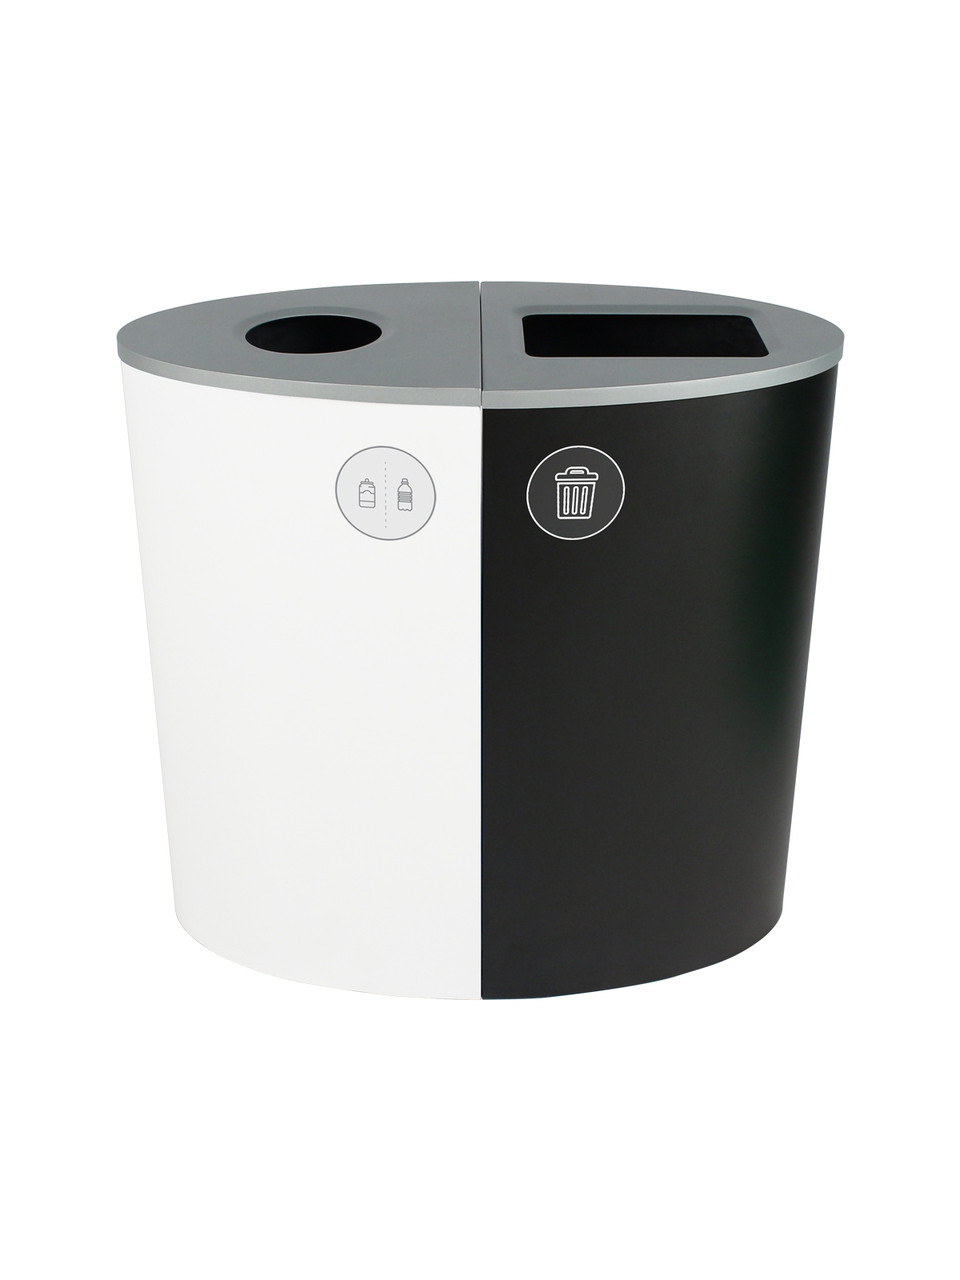 44 Gallon Spectrum Ellipse Dual Trash Can & Recycle Bin White/Black 8107077-14